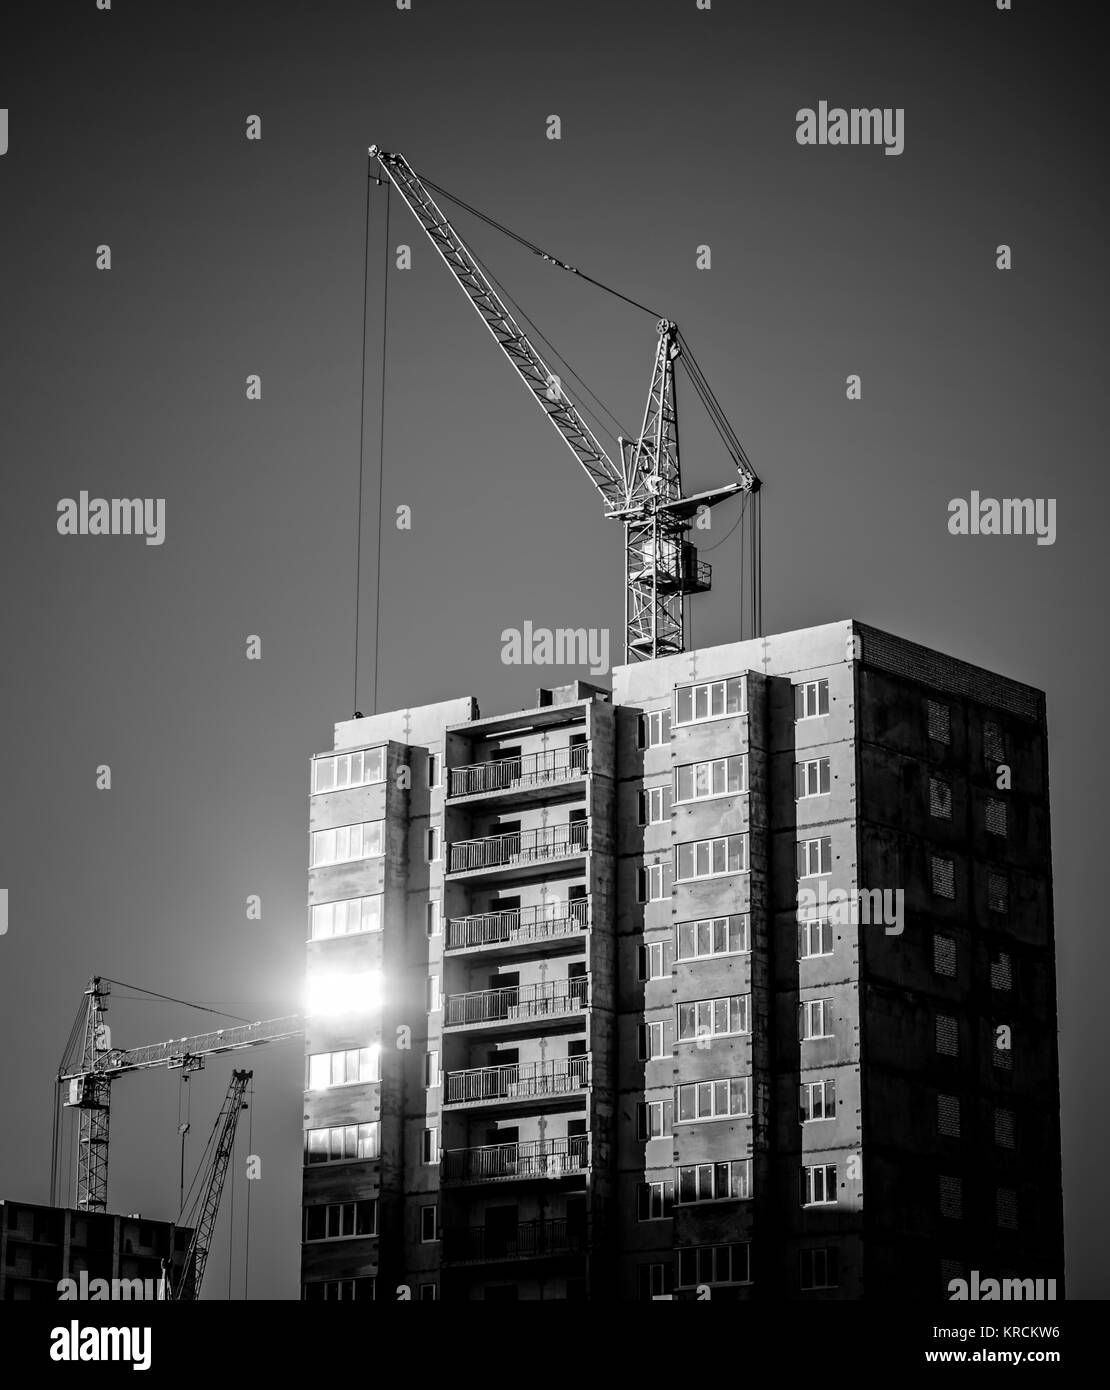 silhouettes of industrial construction cranes and building - Stock Image